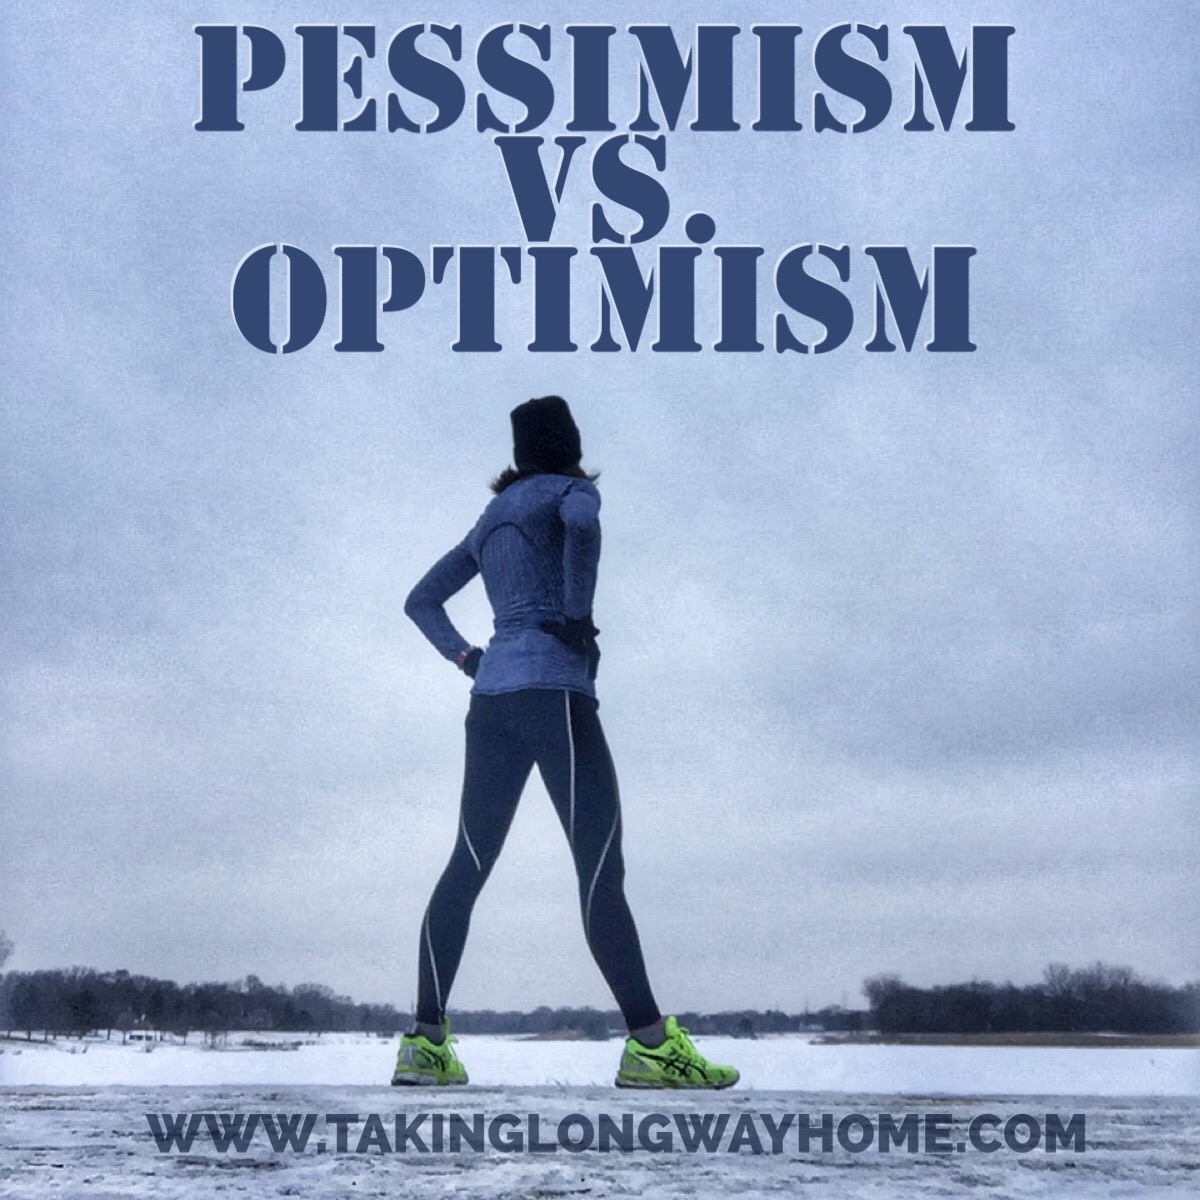 Taking The Long Way Home Pessimism Vs Optimism